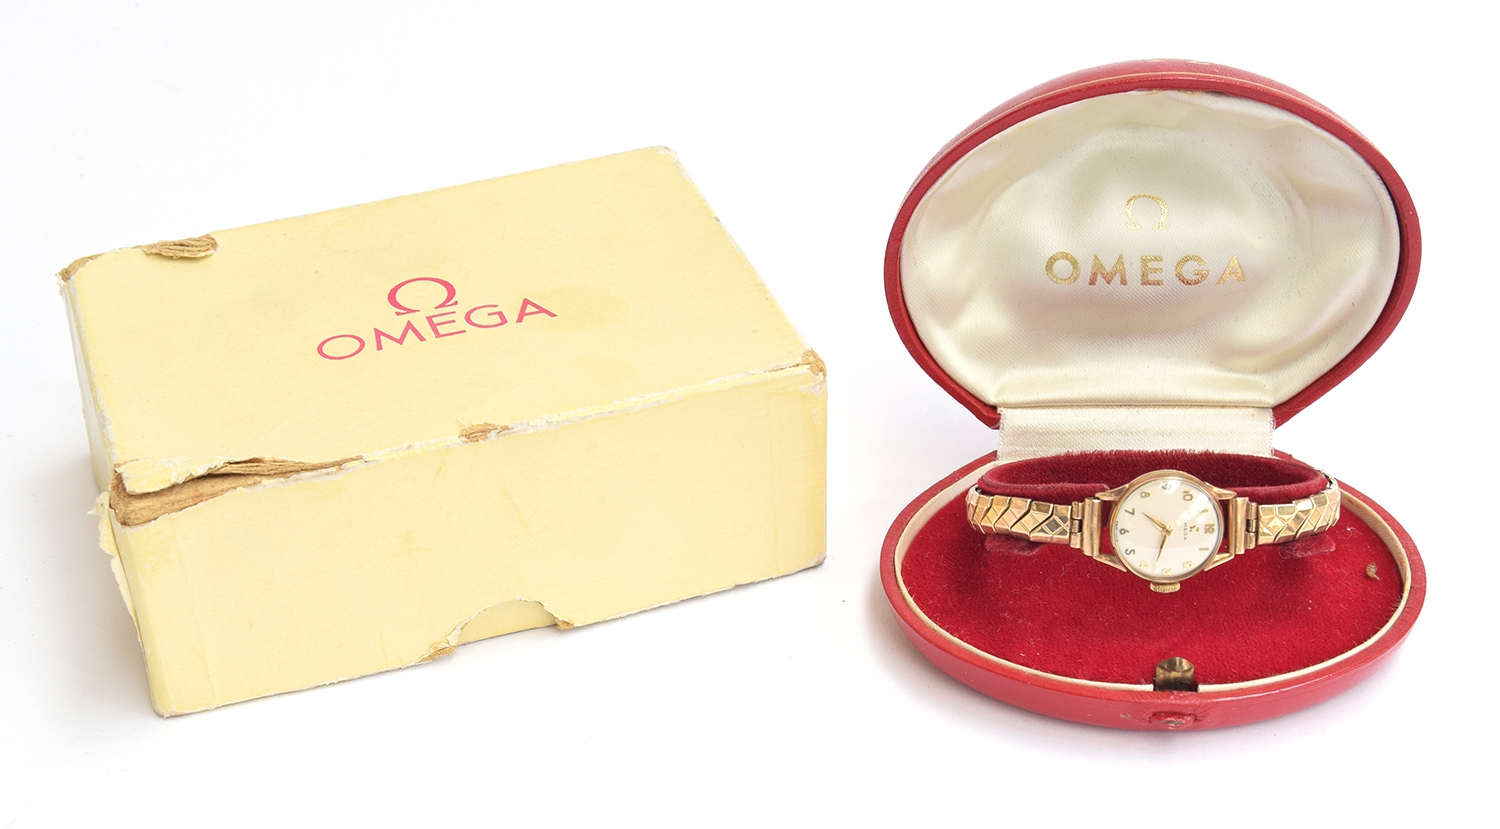 A ladies gold Omega watch on yellow metal bracelet. In original box and with paperwork - Image 2 of 2